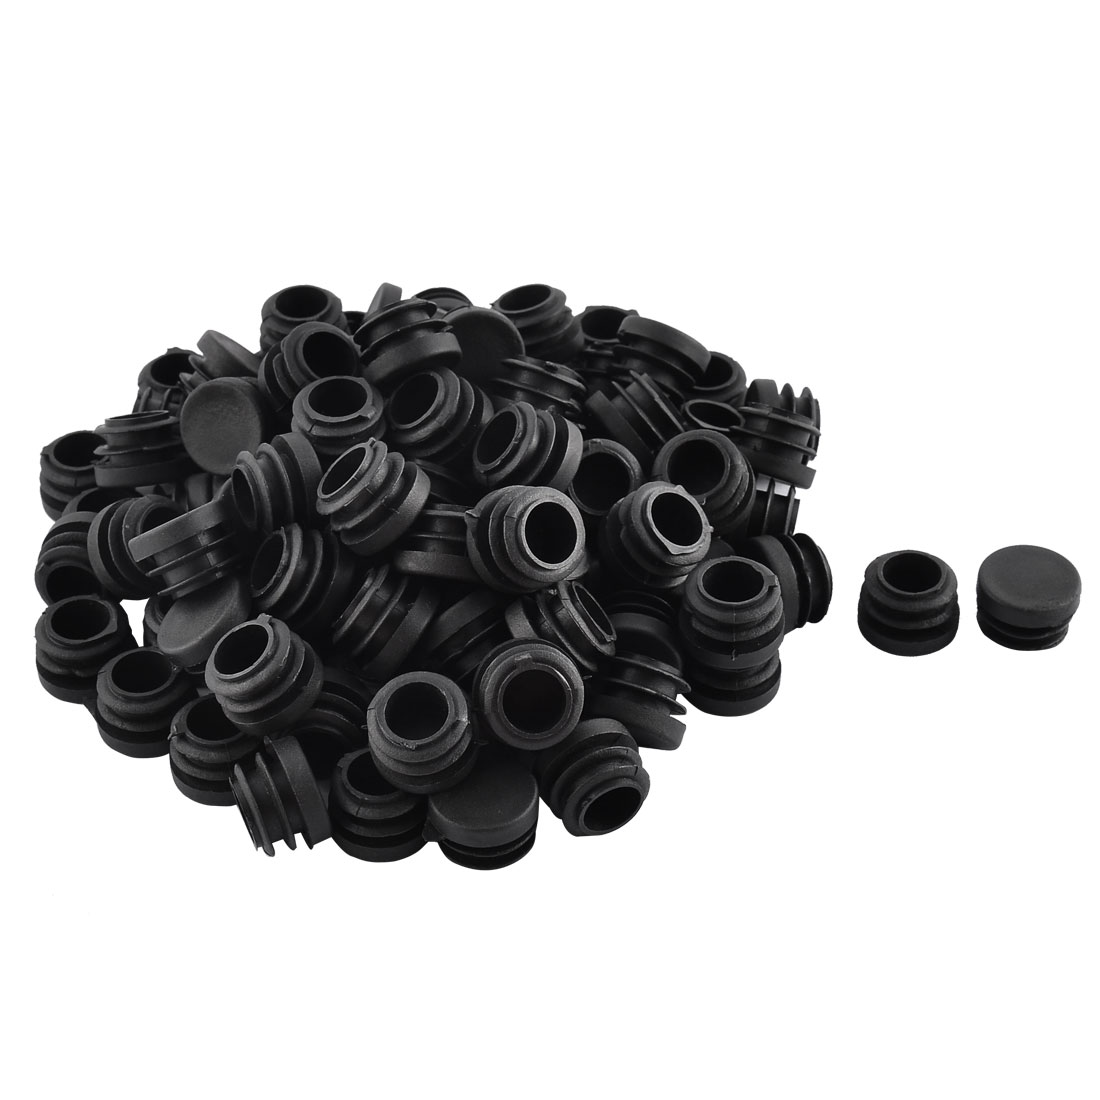 Home School Plastic Round Shaped Furniture Table Chair Leg Feet Tube Insert Black 100 Pcs